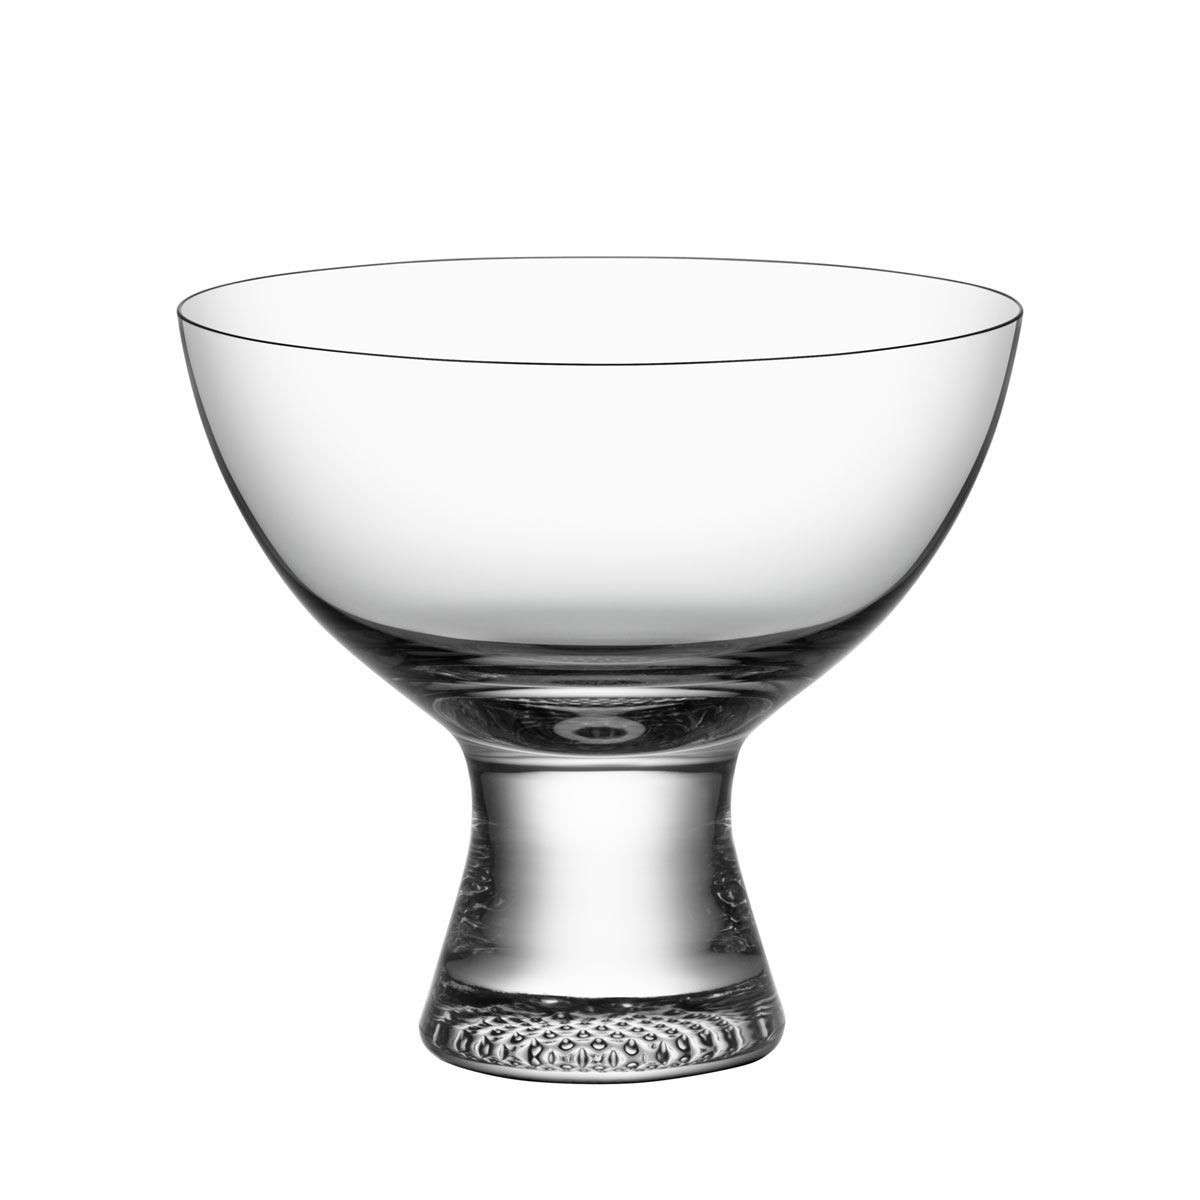 Kosta Boda Limelight Footed Dessert Bowl